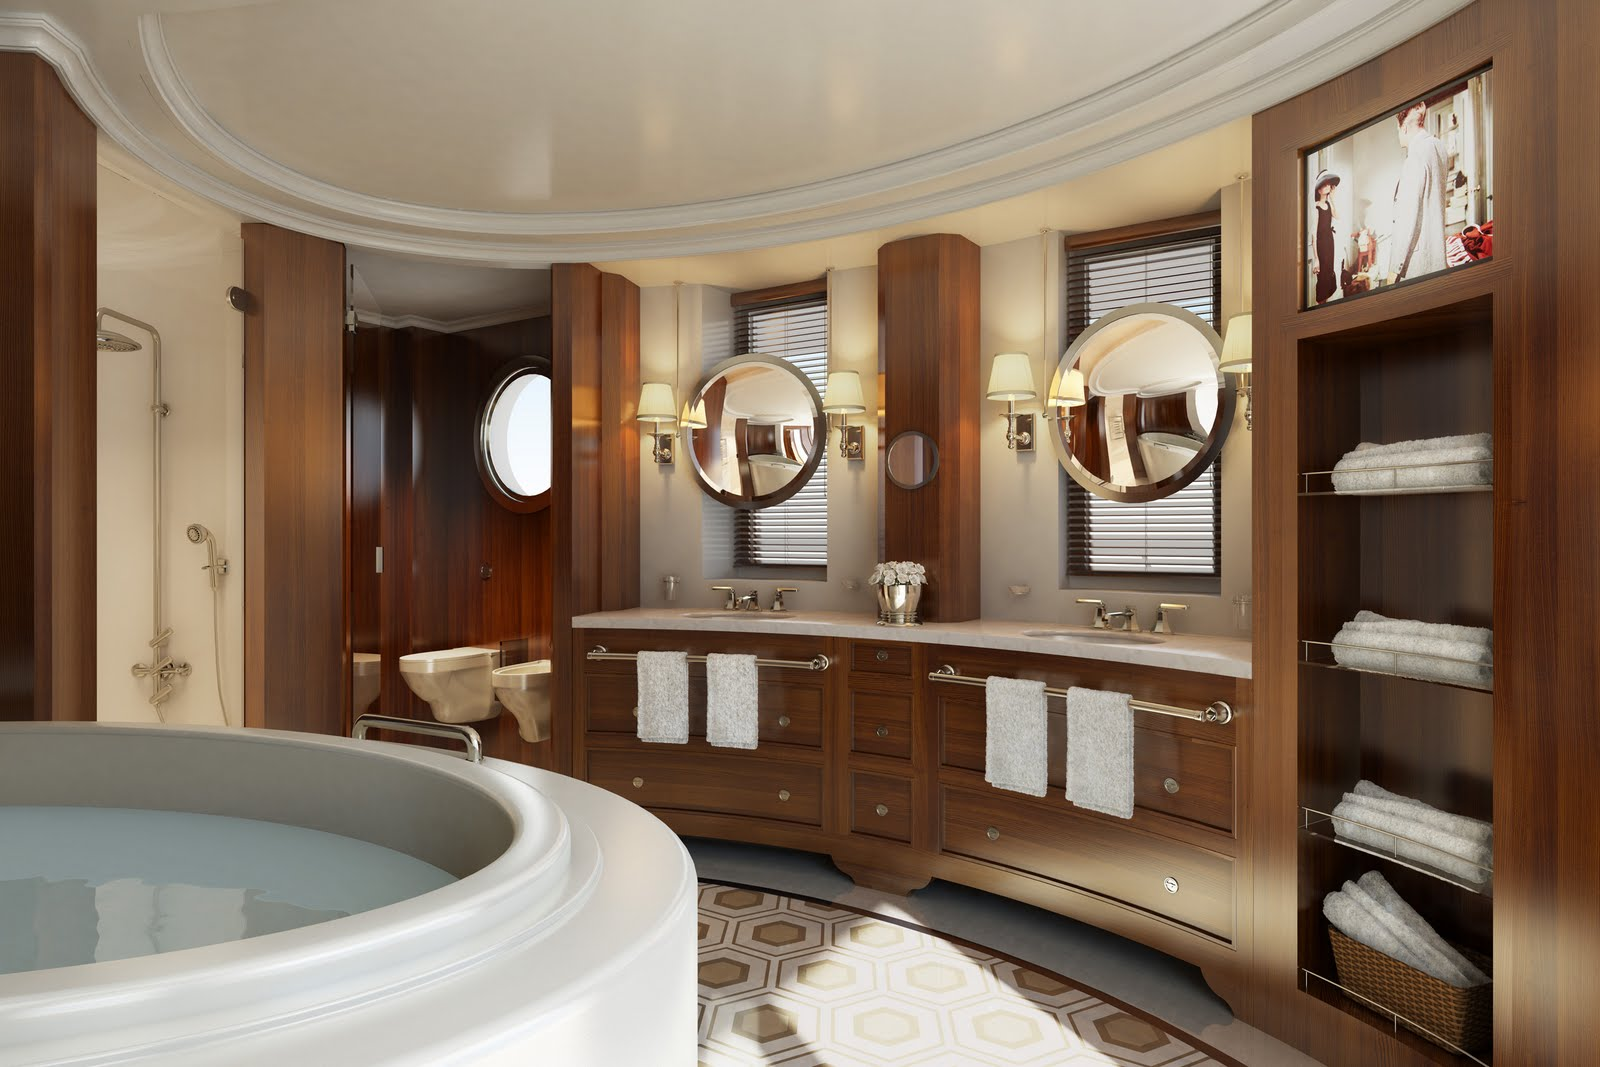 Mighty lists 10 gorgeous bathrooms - Luxury bathroom designs with stunning interior ...